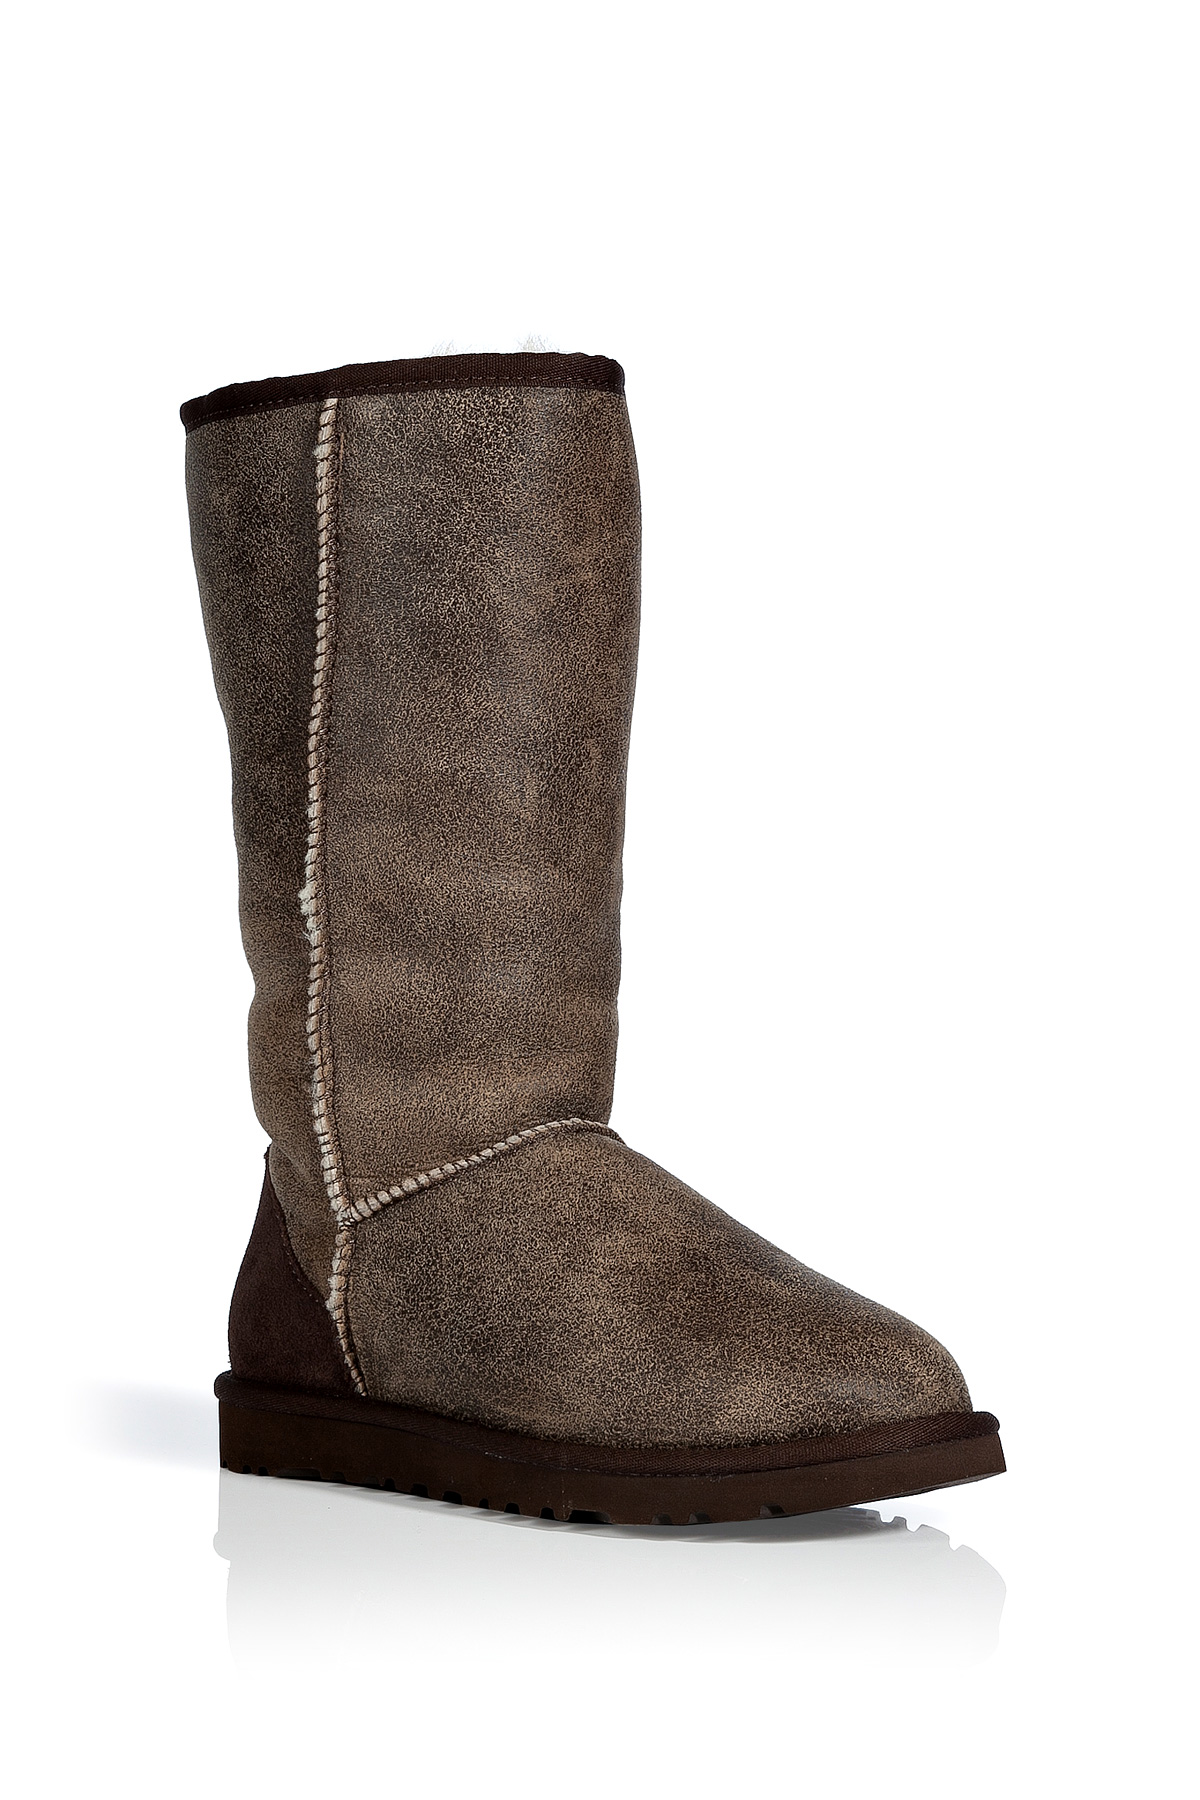 Lyst Ugg Chestnut Vintage Classic Tall Bomber Boots In Brown